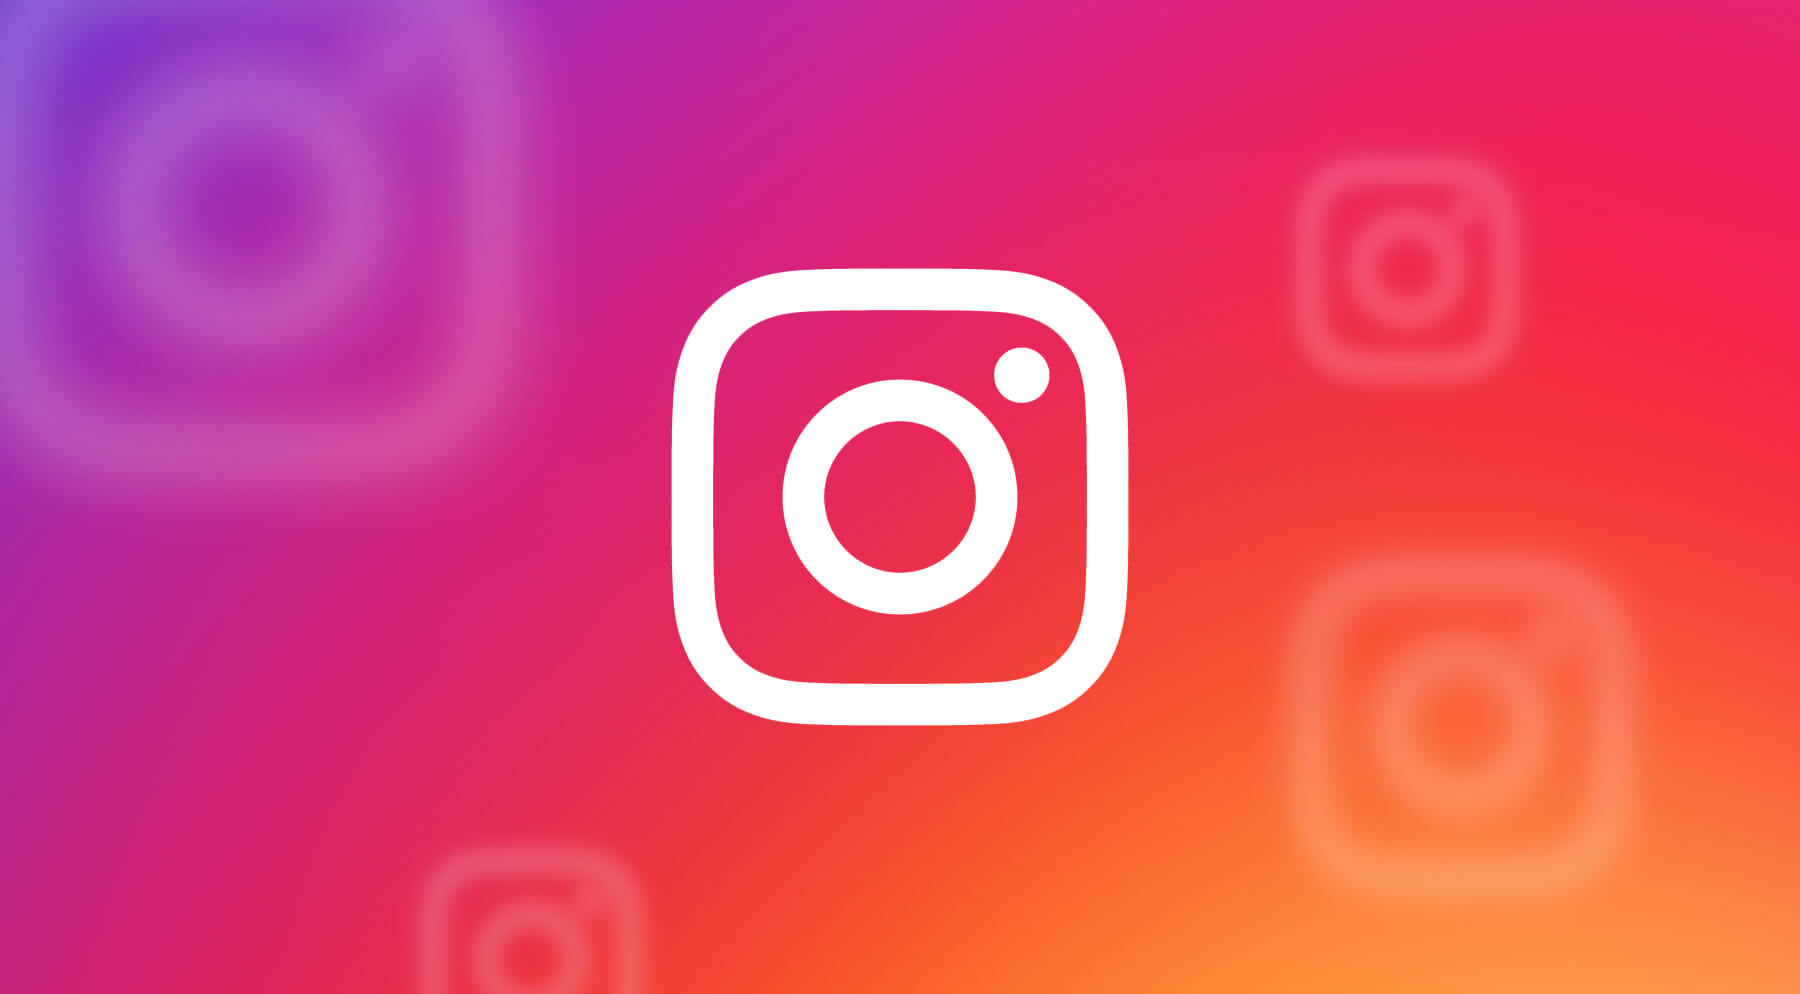 Come contattare Instagram per account rubato 1